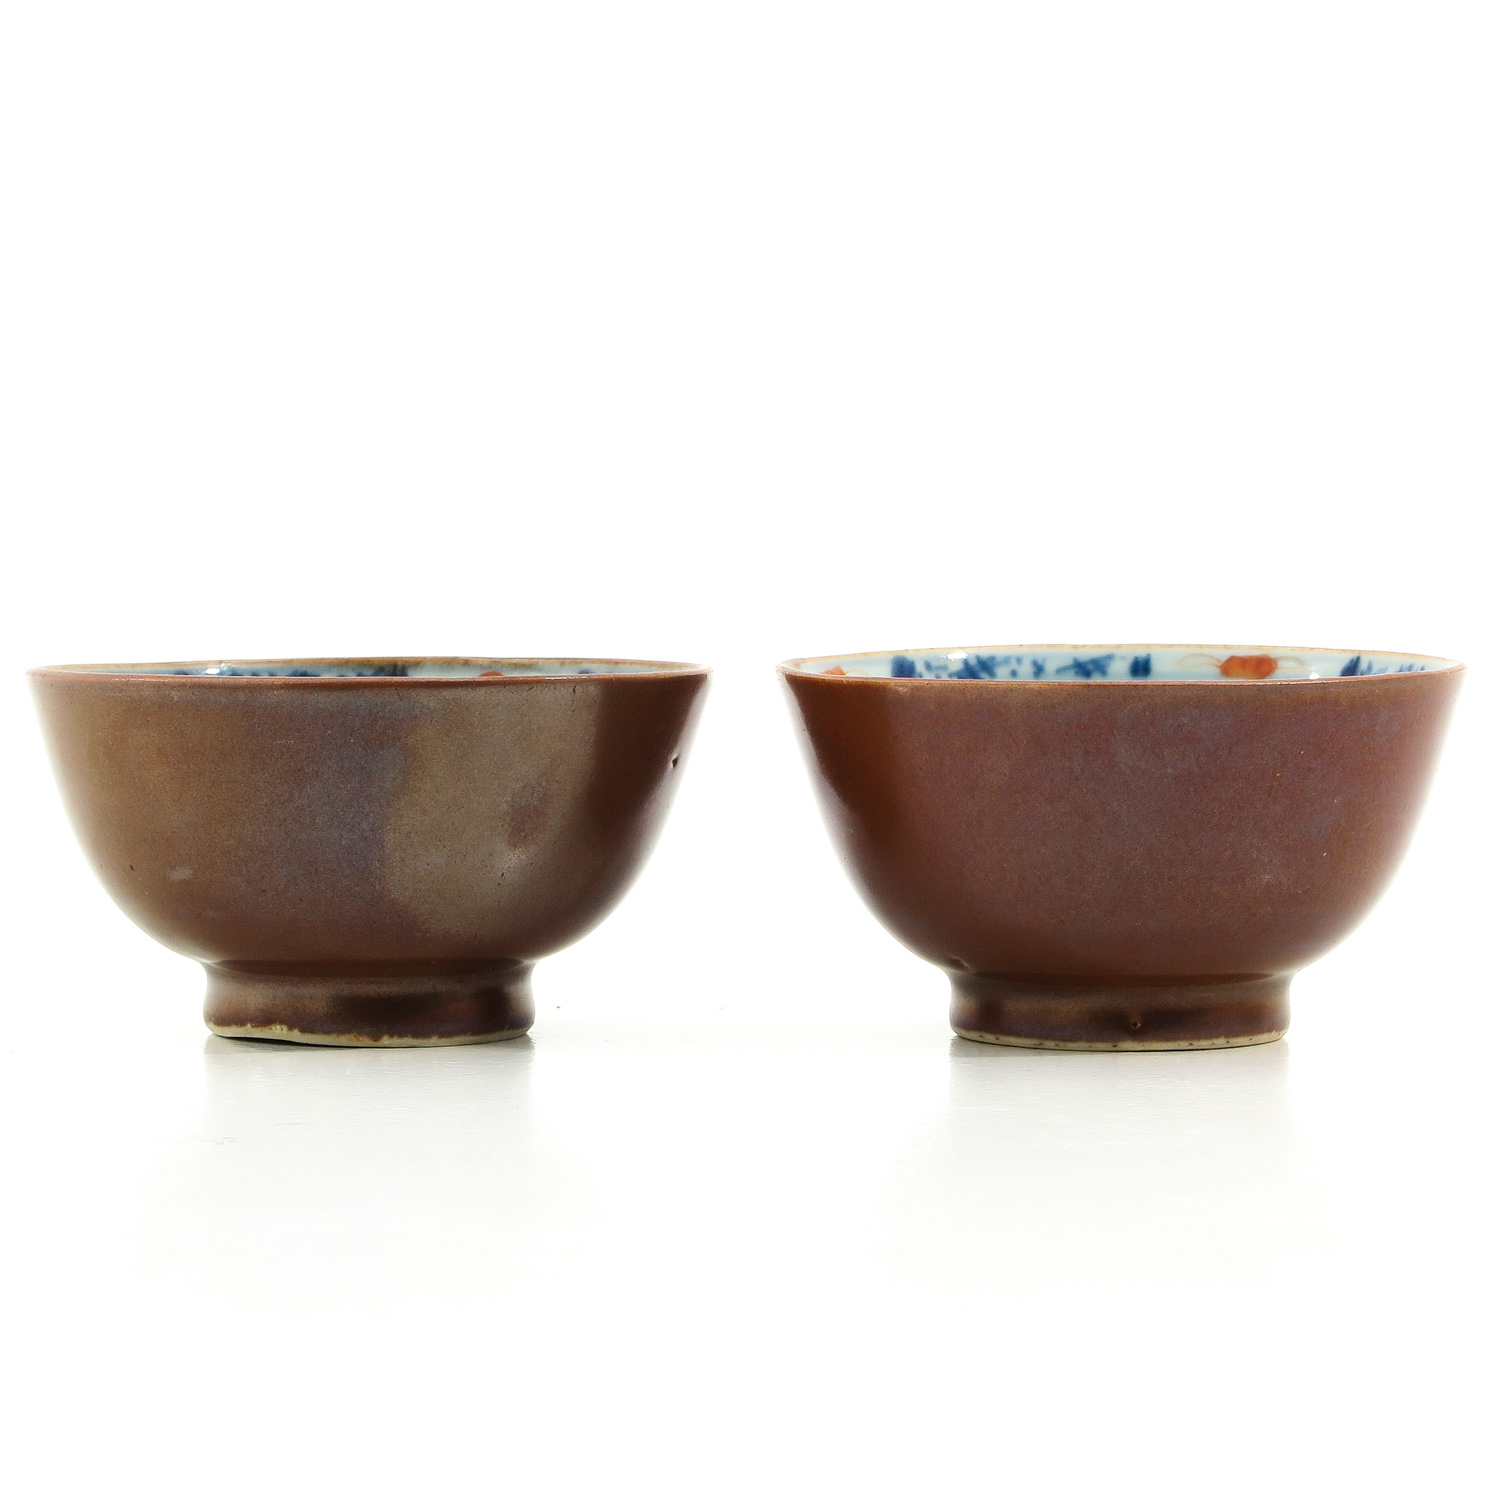 A Pair of Batavianware Cups and Saucers - Image 2 of 9